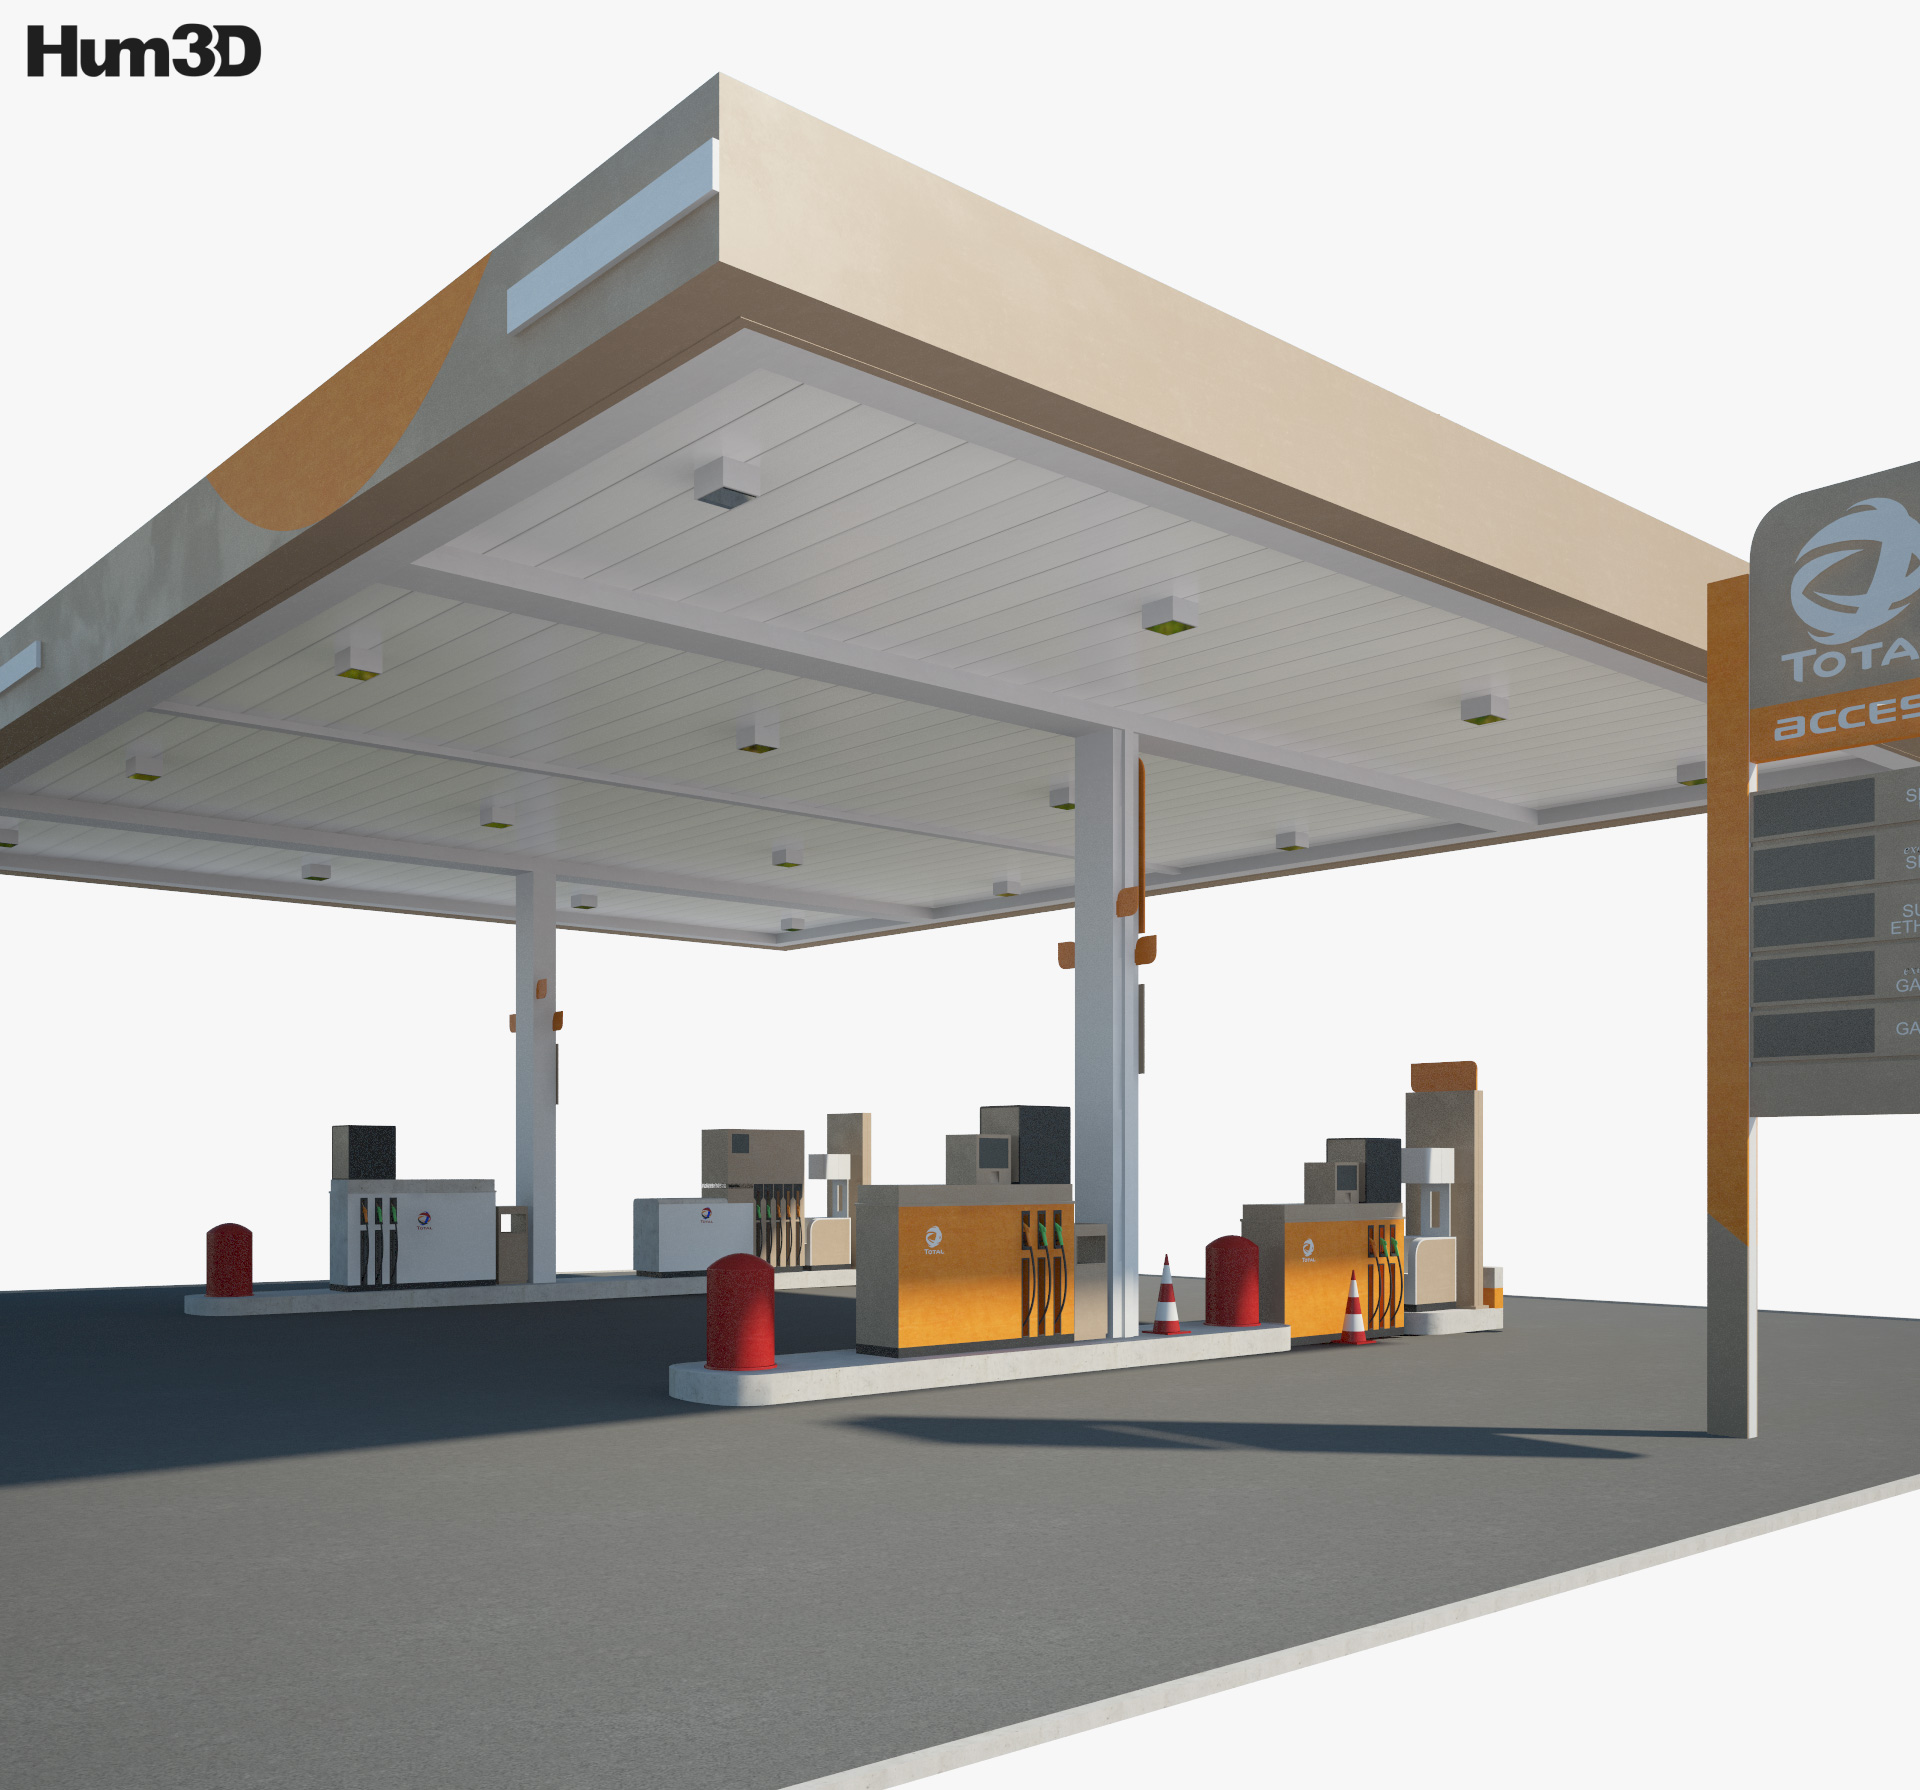 Total Access gas station 001 3d model